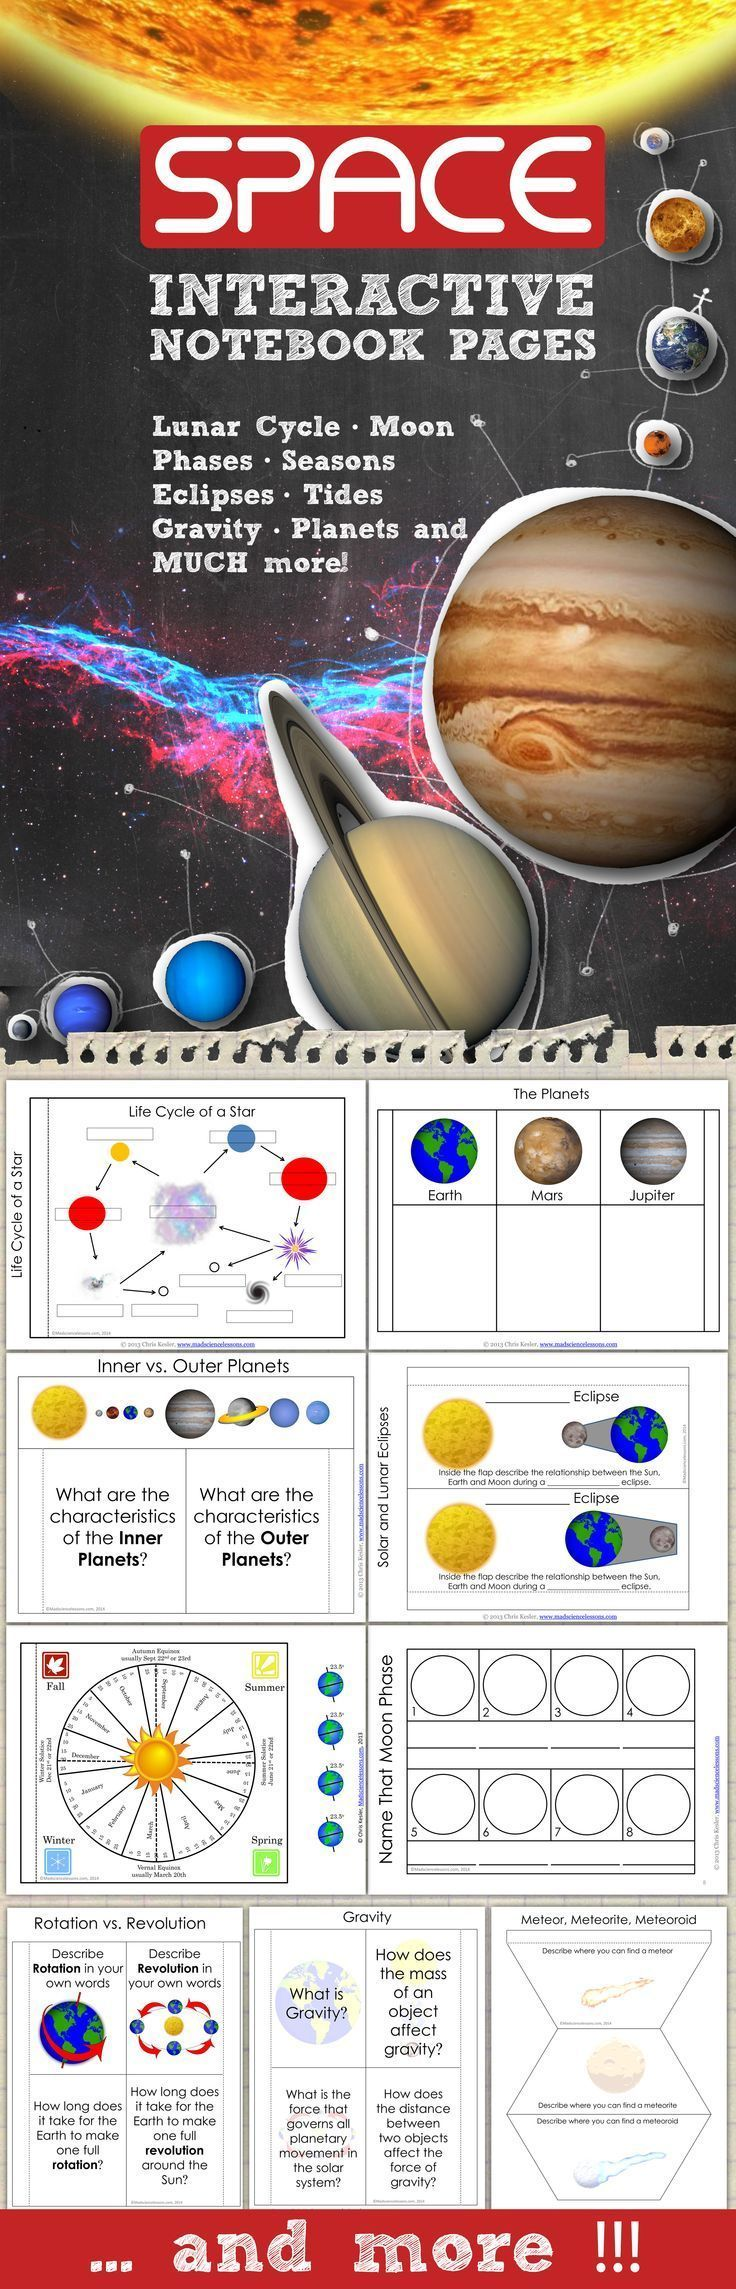 Space Interactive Notebook Pages - Take your student INB's to the next level with these templates for space science.  Topics include: Lunar Cycle, Moon Phases, Rotation vs. Revolution, Lunar and Solar Eclipses, Spring and Neap Tides, Inner and Outer Plane